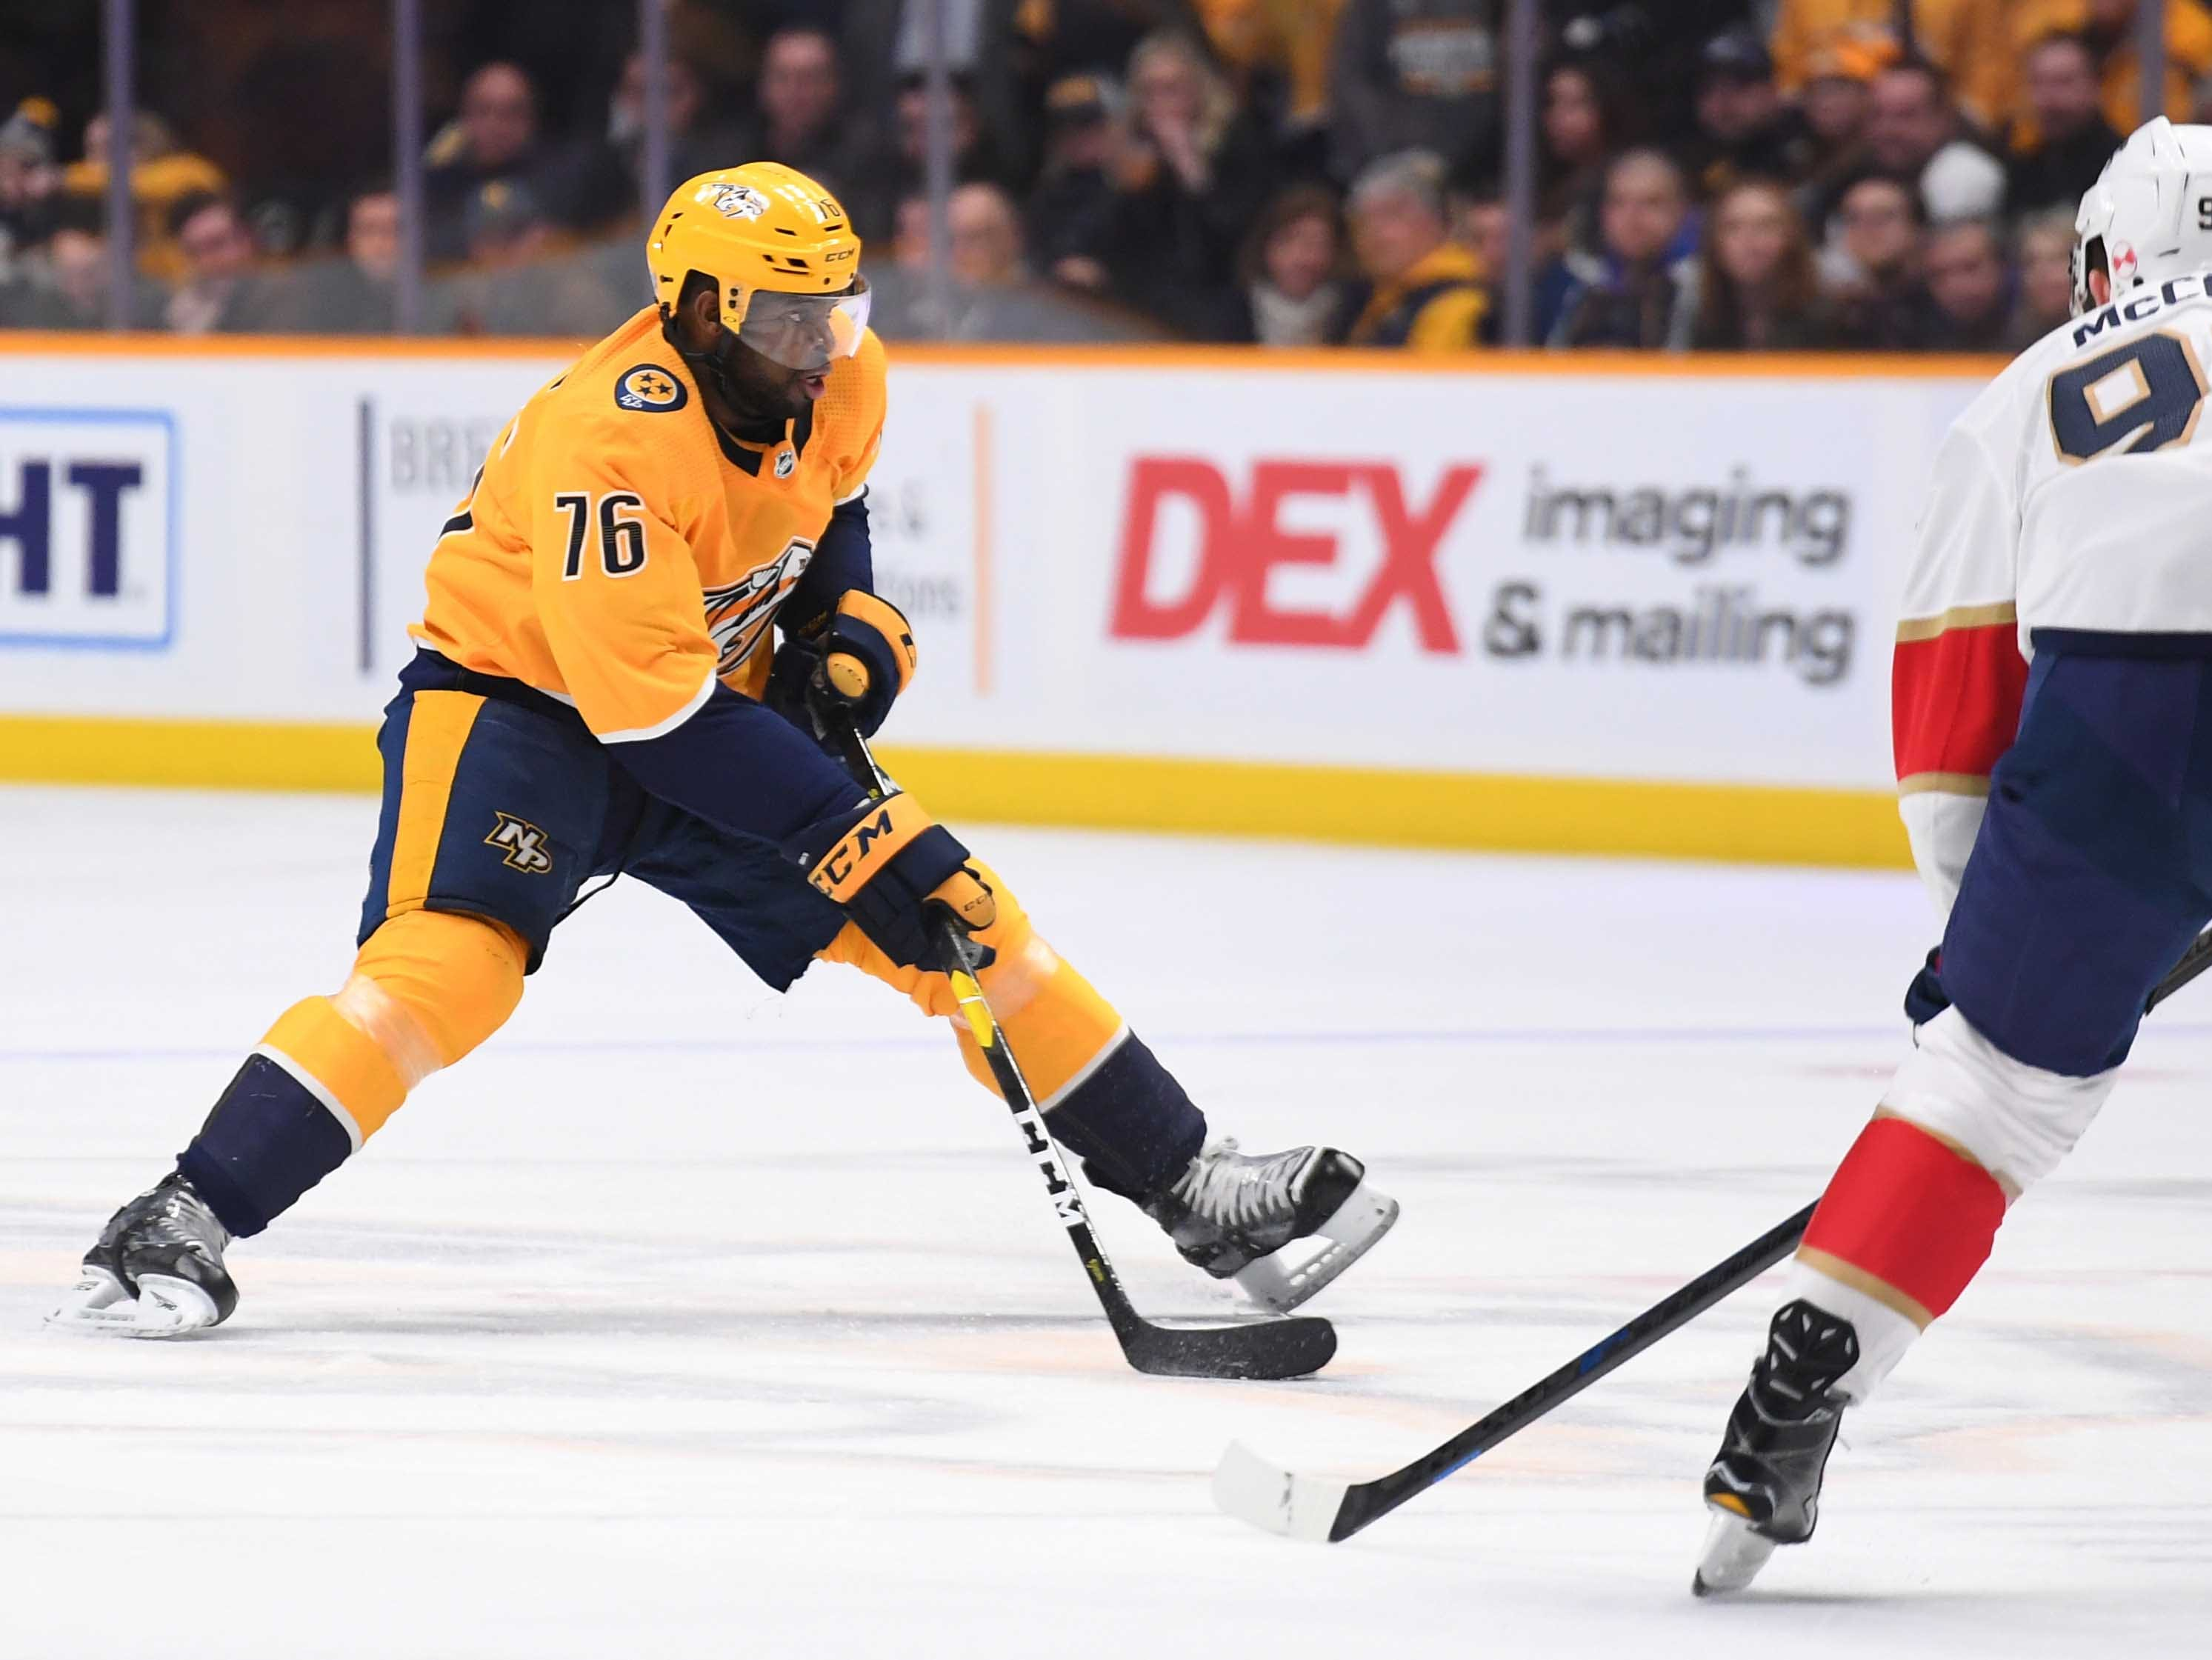 Nashville Predators defenseman P.K. Subban (76) skates the puck into the offensive zone during the first period against the Florida Panthers at Bridgestone Arena.